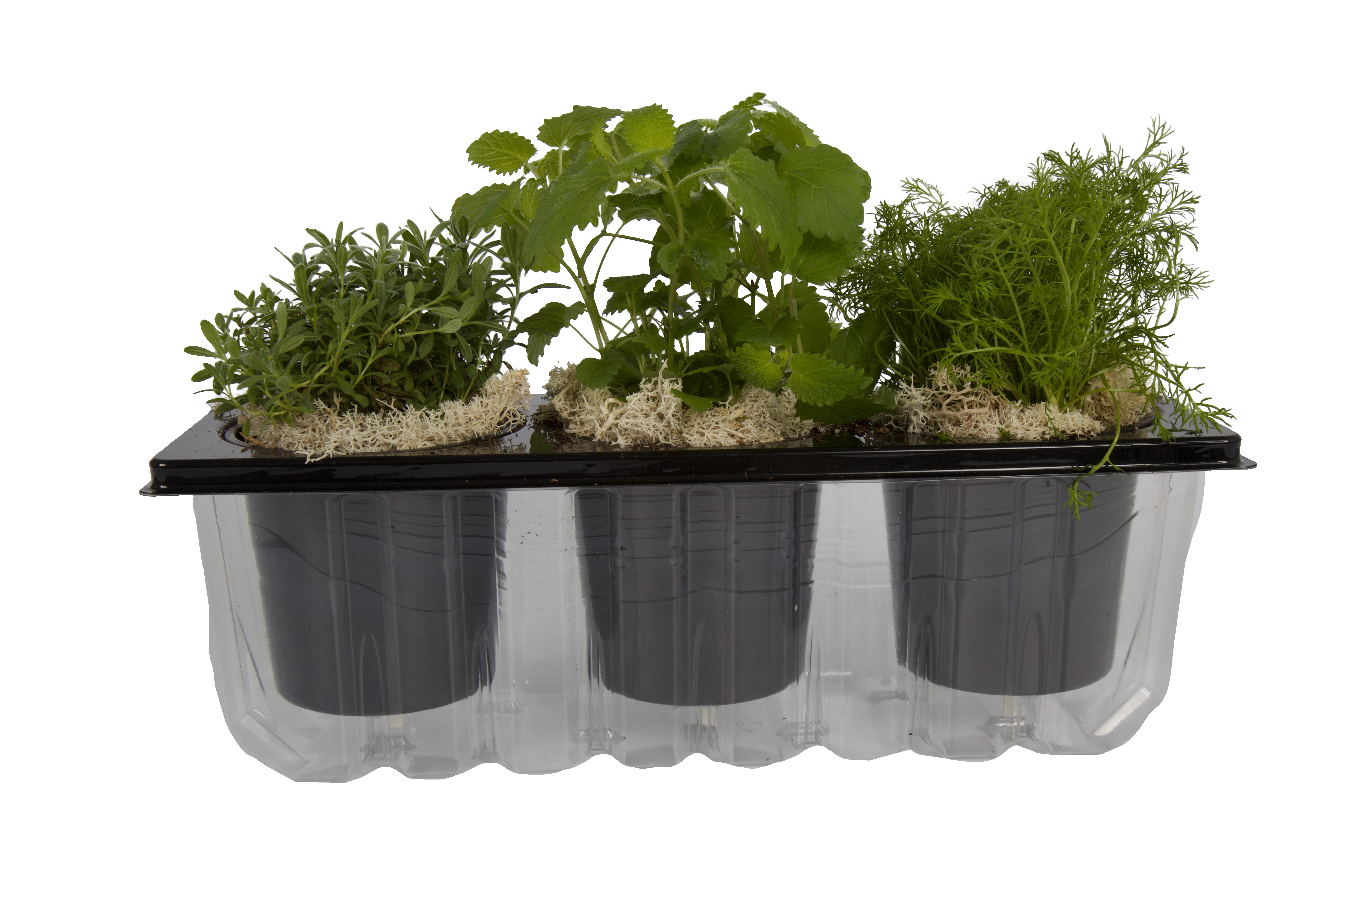 The Three Co | LiveBox | Self-watering planter